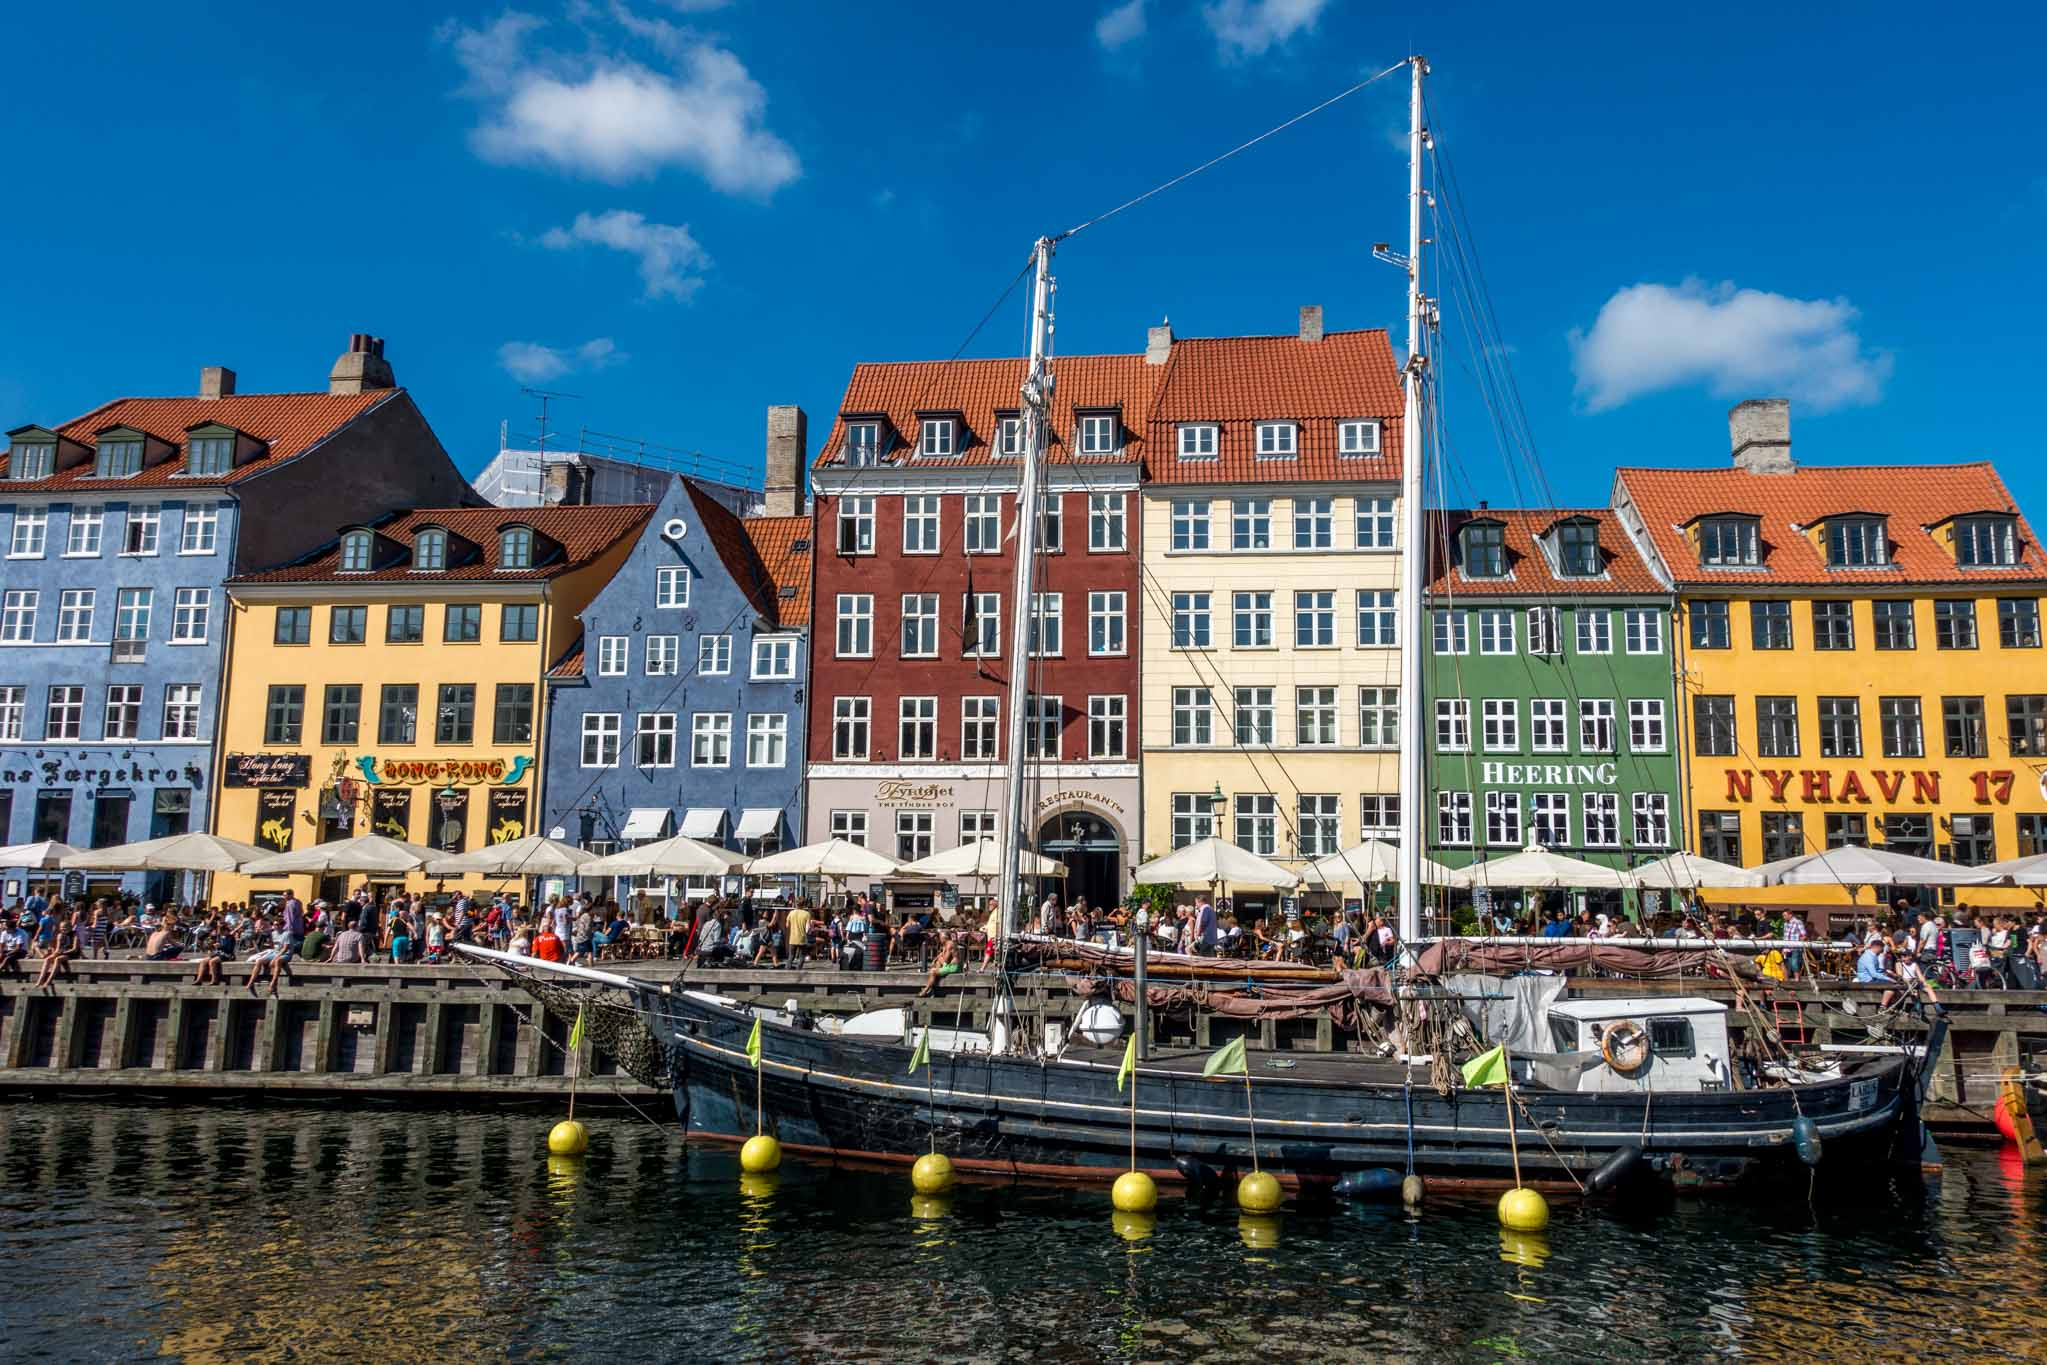 Nyhavn is a Copenhagen must see on a sunny day